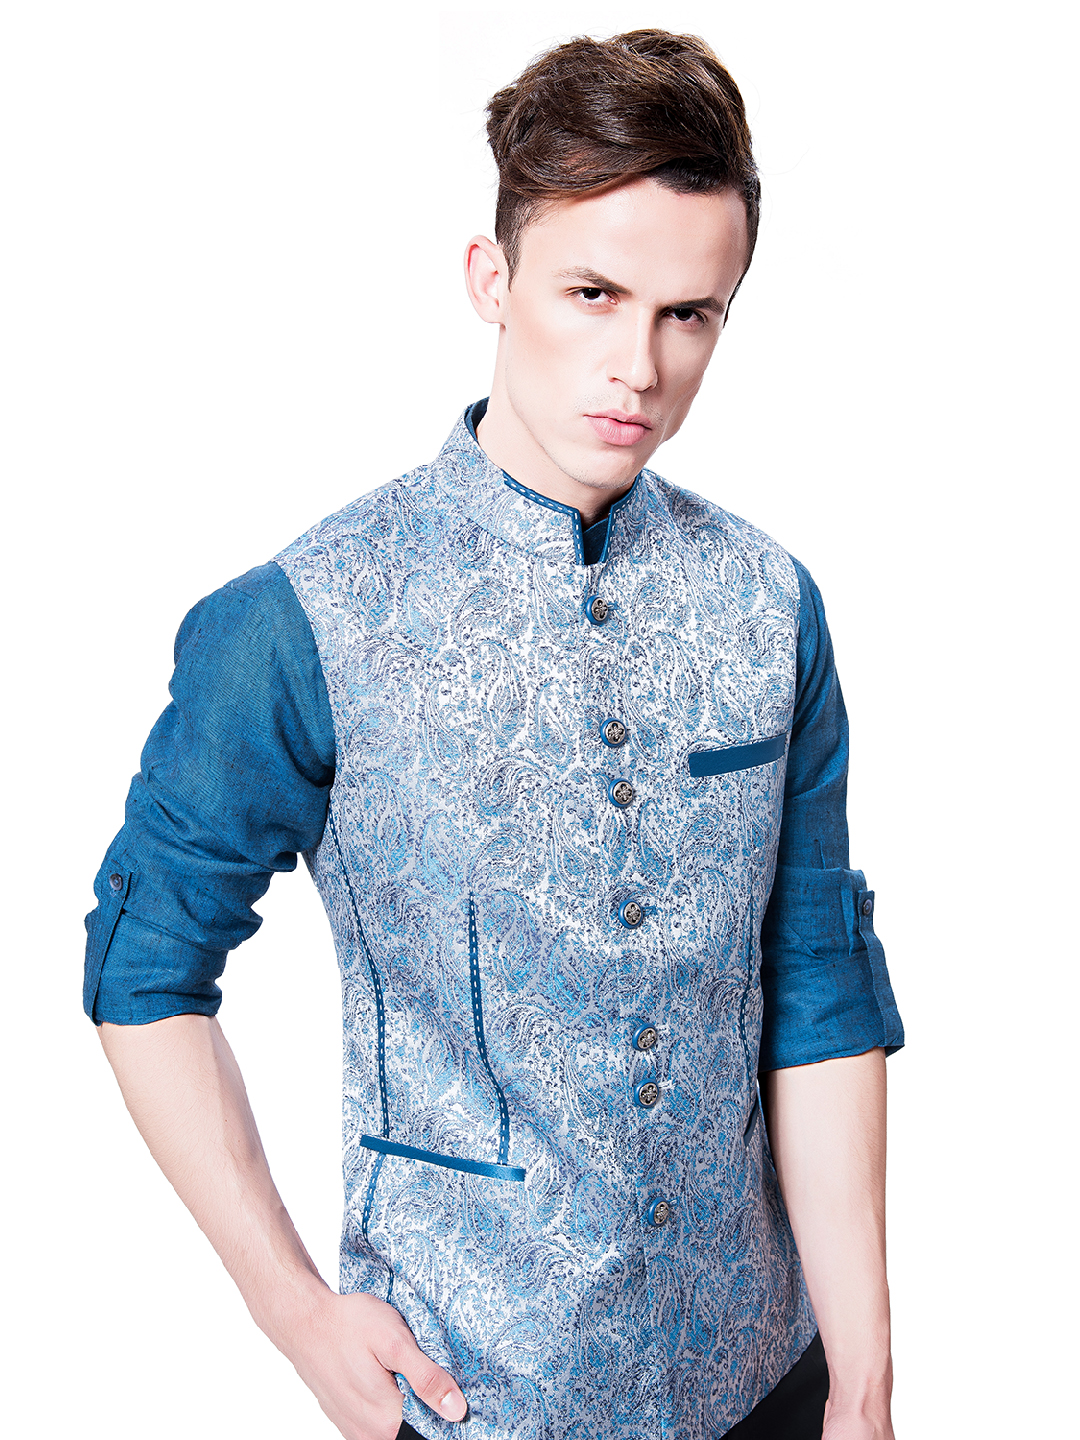 Men\'s Waistcoat 2018 - Buy Latest Nehru Jackets Online at best price